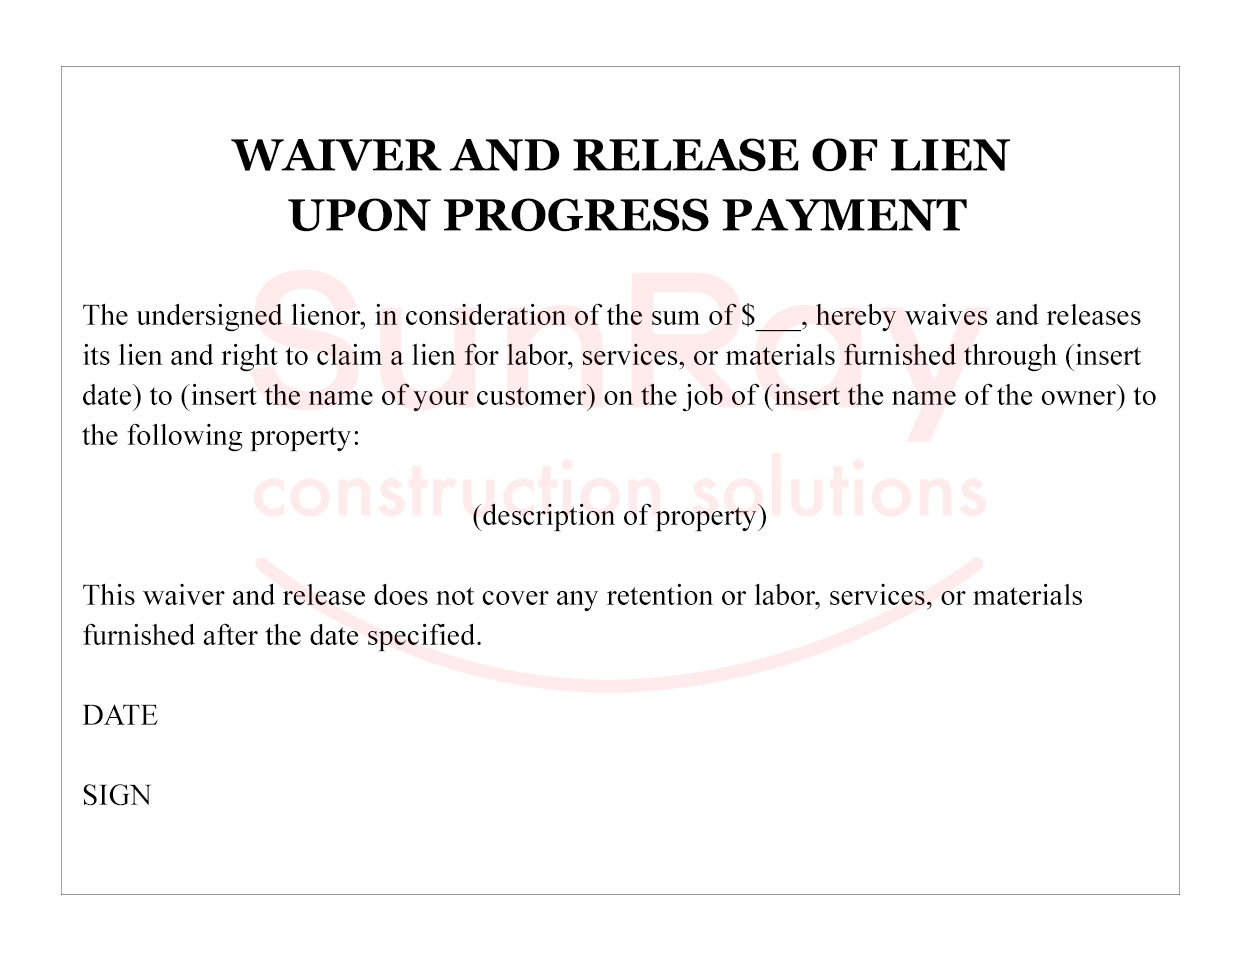 WAIVER AND RELEASE OF LIEN UPON PROGRESS PAYMENT